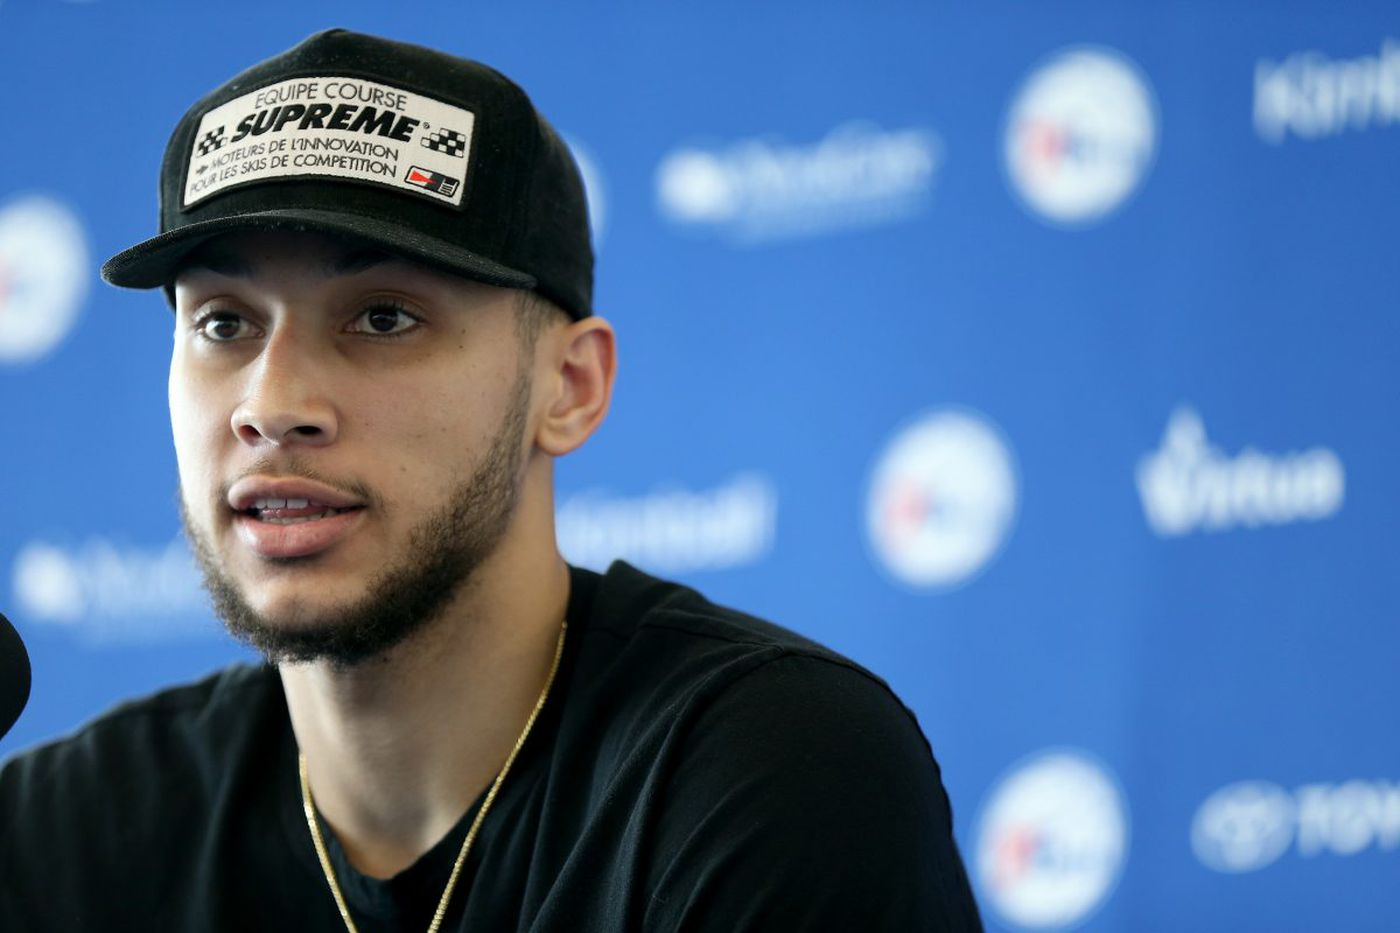 Ben Simmons' shot won't get a rebuild this offseason, but it will get a lot of work with Sixers' staff | David Murphy